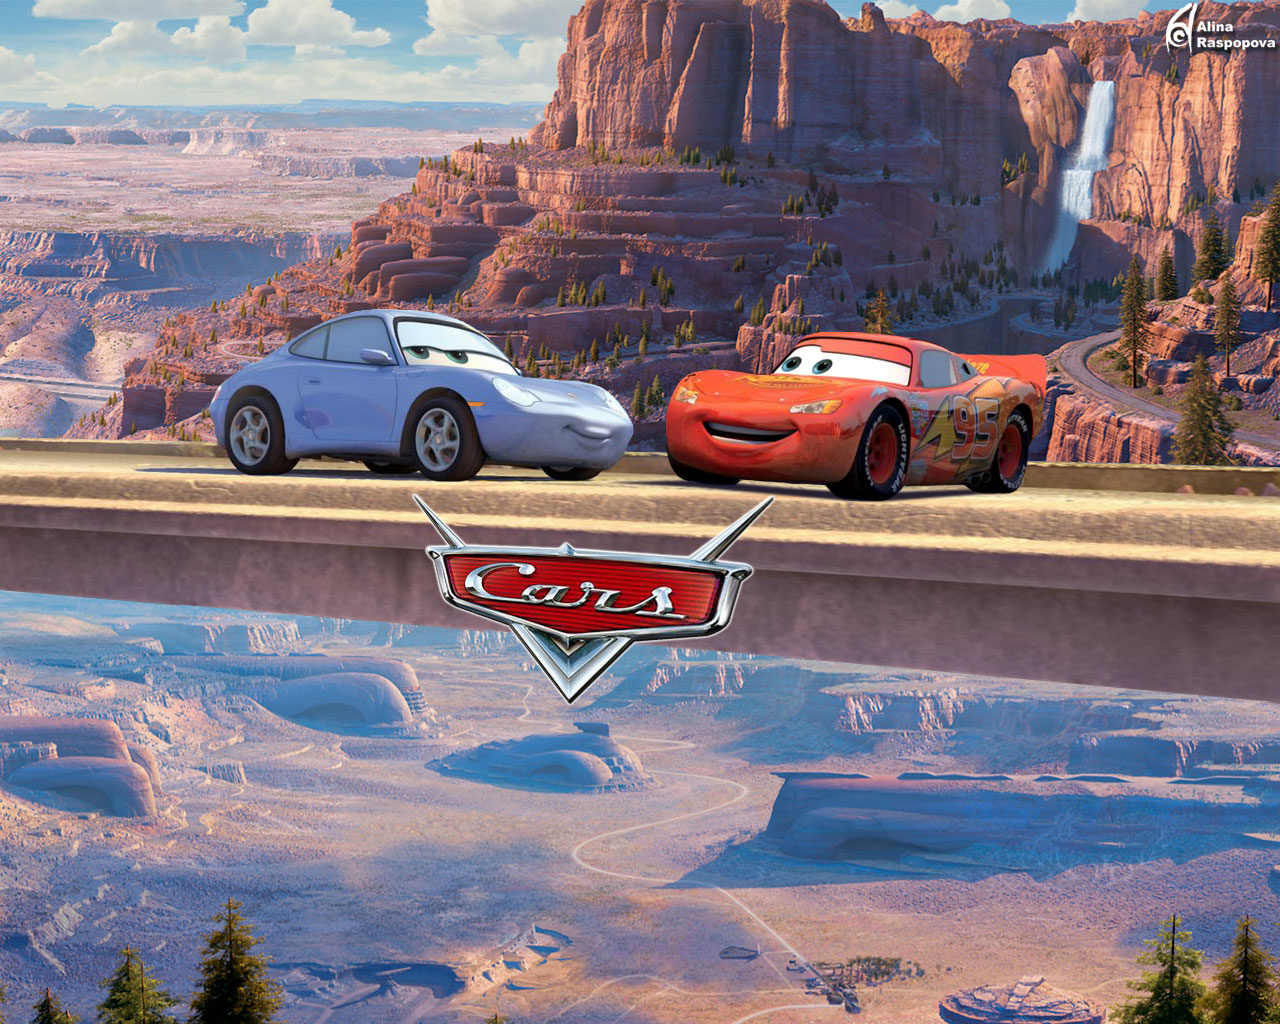 Jimmy Here: Cars Film Background